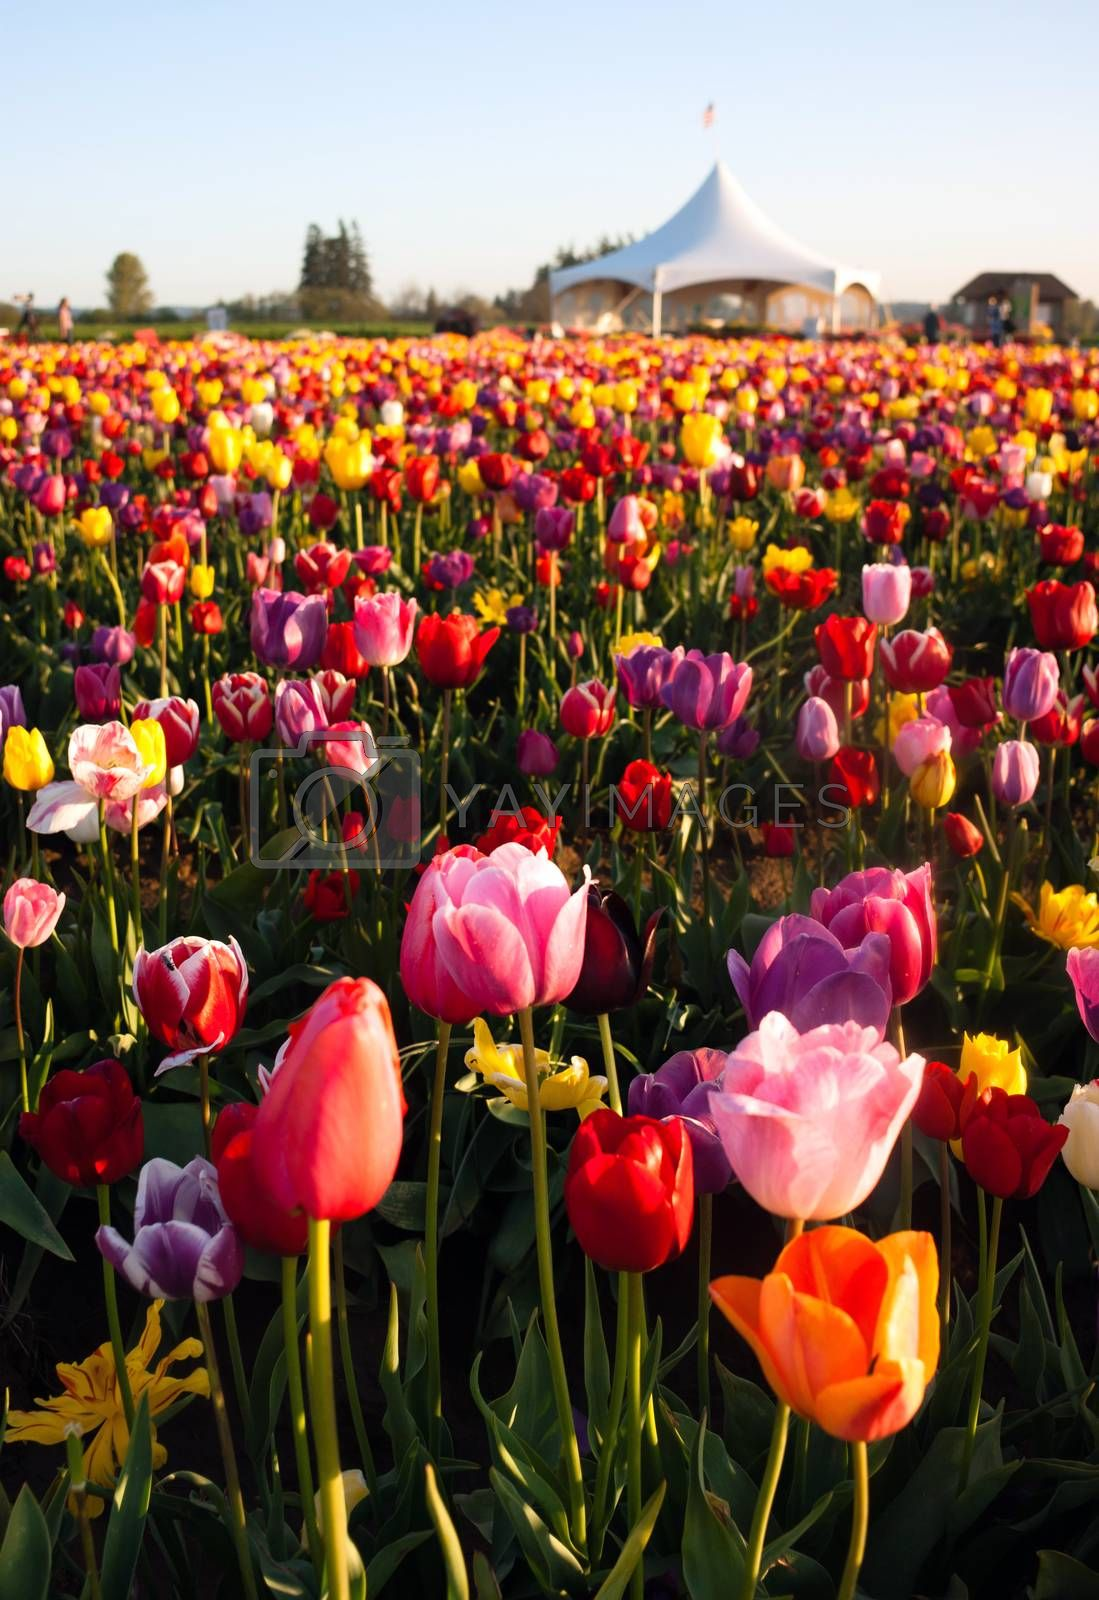 Royalty free image of Neat Rows of Tulips Colorful Flowers Farmer's Bulb Farm by ChrisBoswell